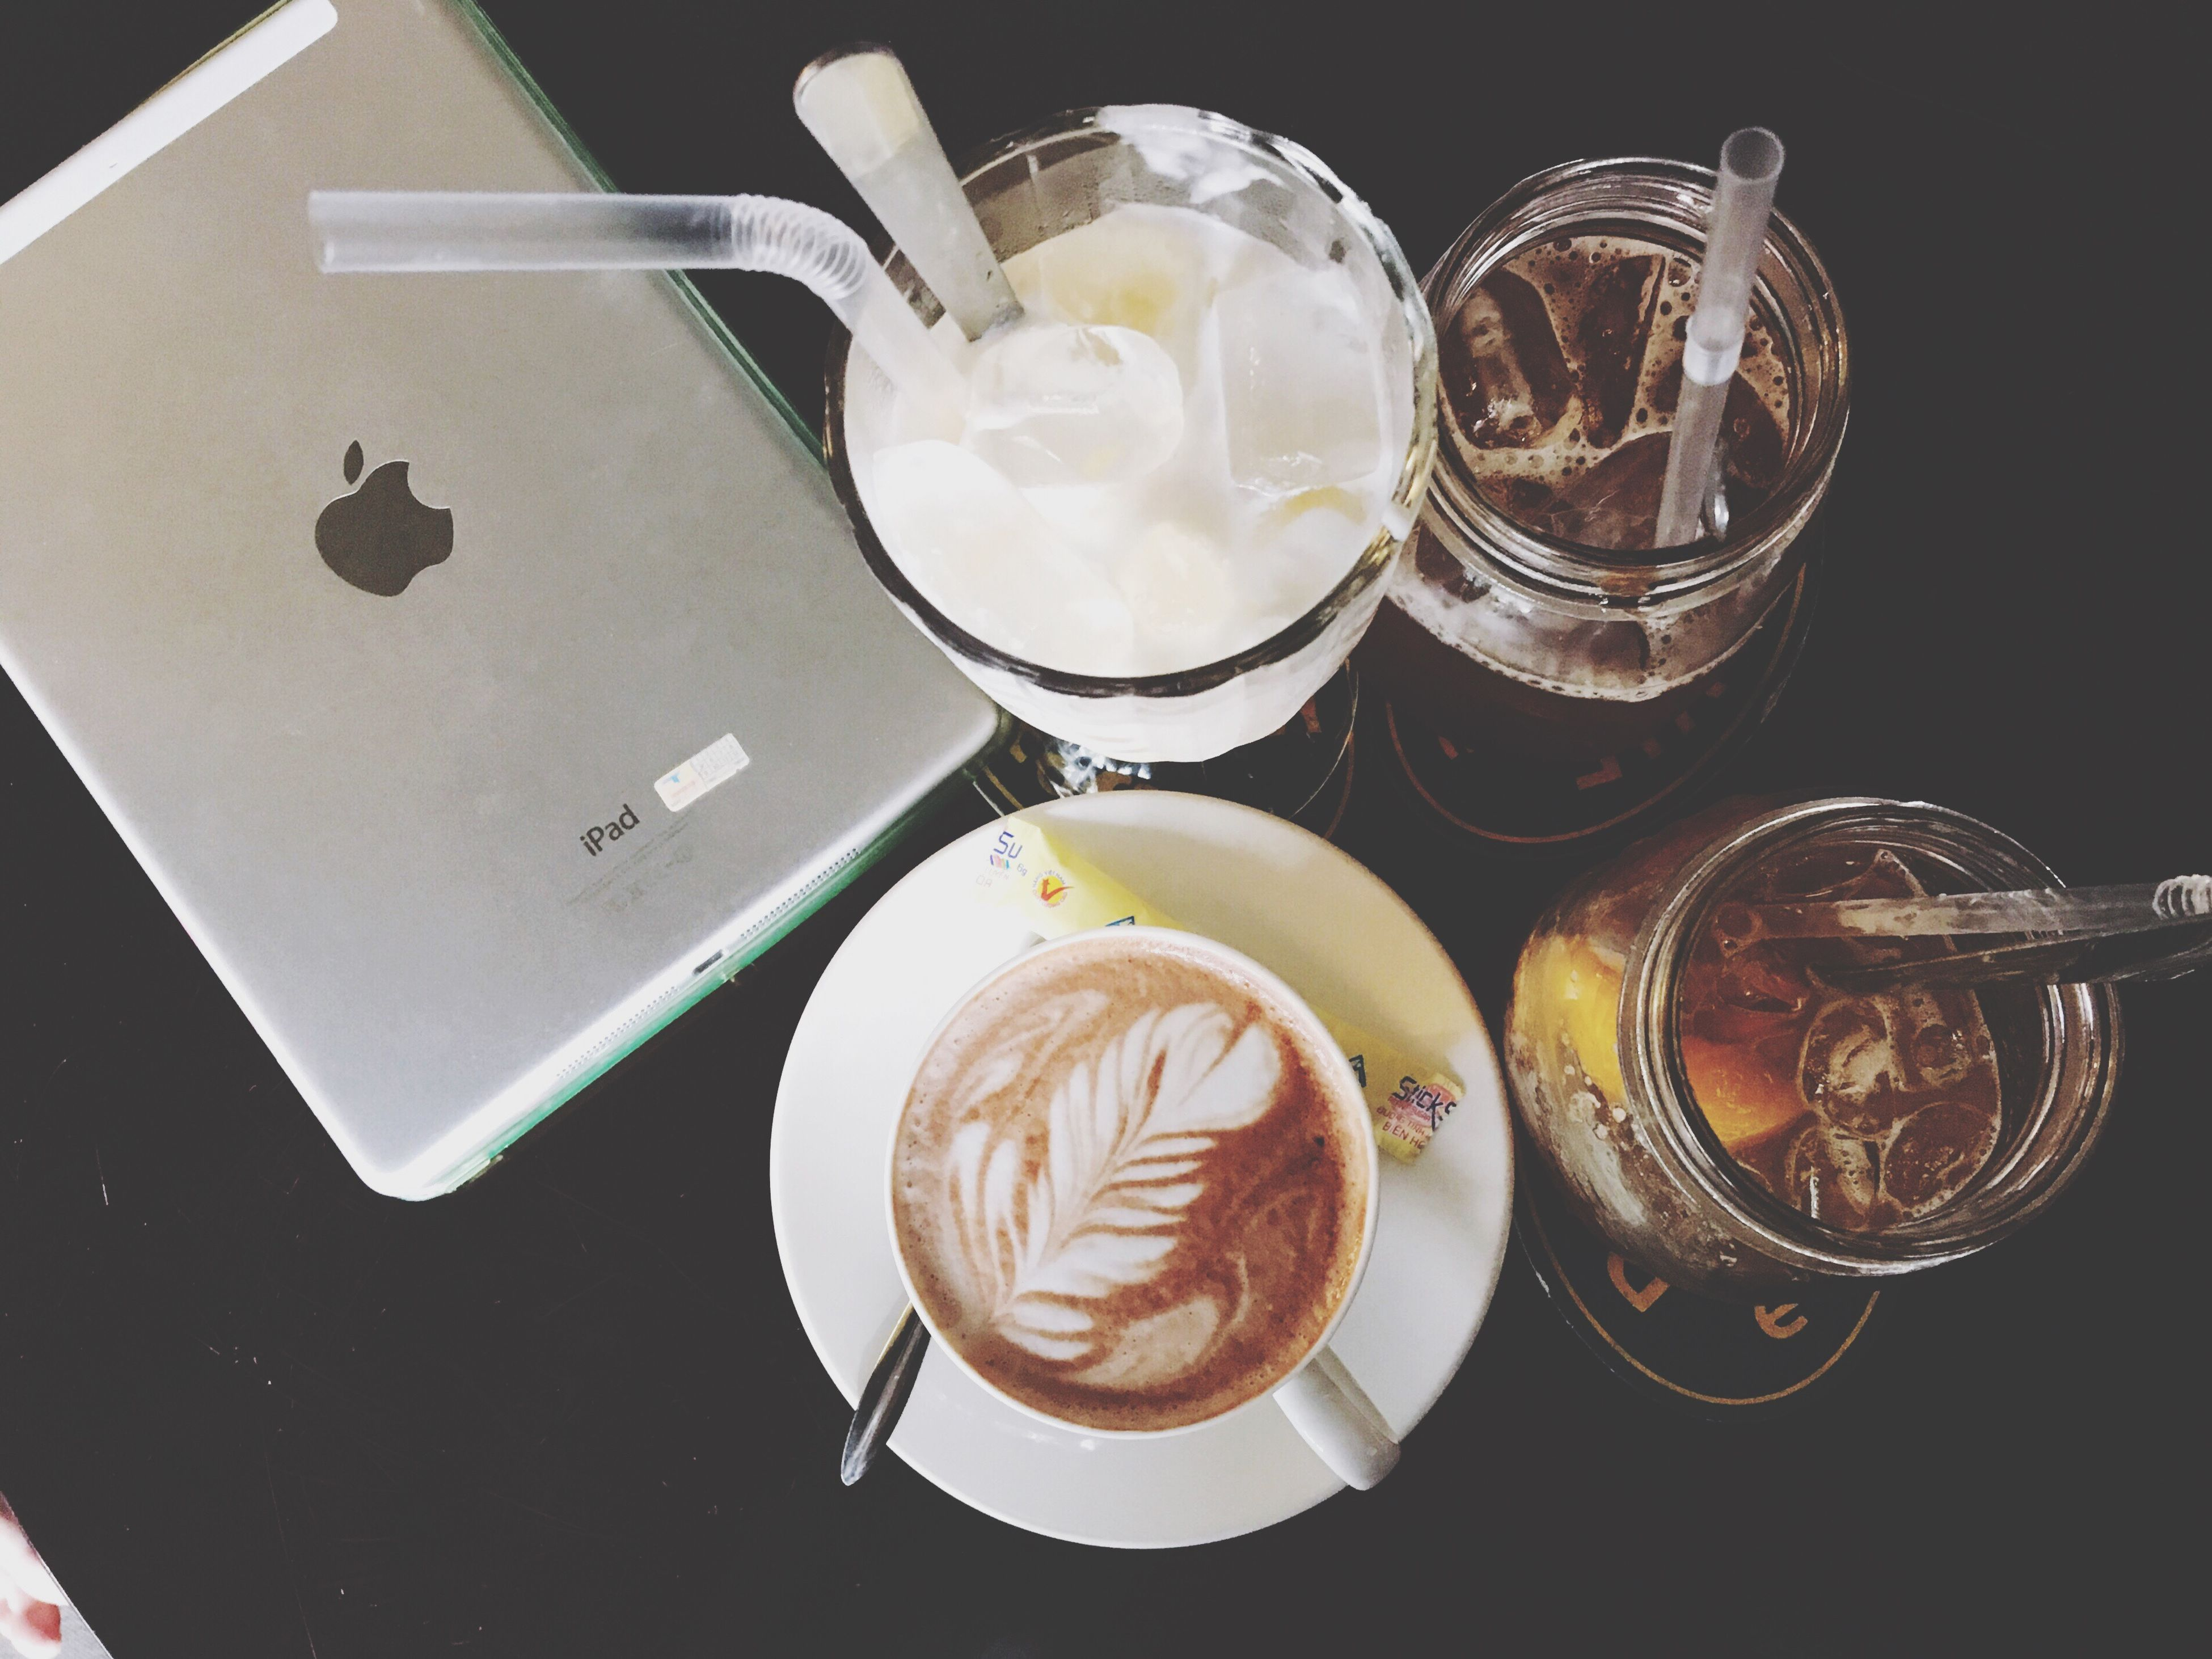 food and drink, indoors, still life, table, sweet food, plate, food, freshness, dessert, spoon, indulgence, ready-to-eat, high angle view, drink, unhealthy eating, refreshment, coffee cup, saucer, serving size, cake